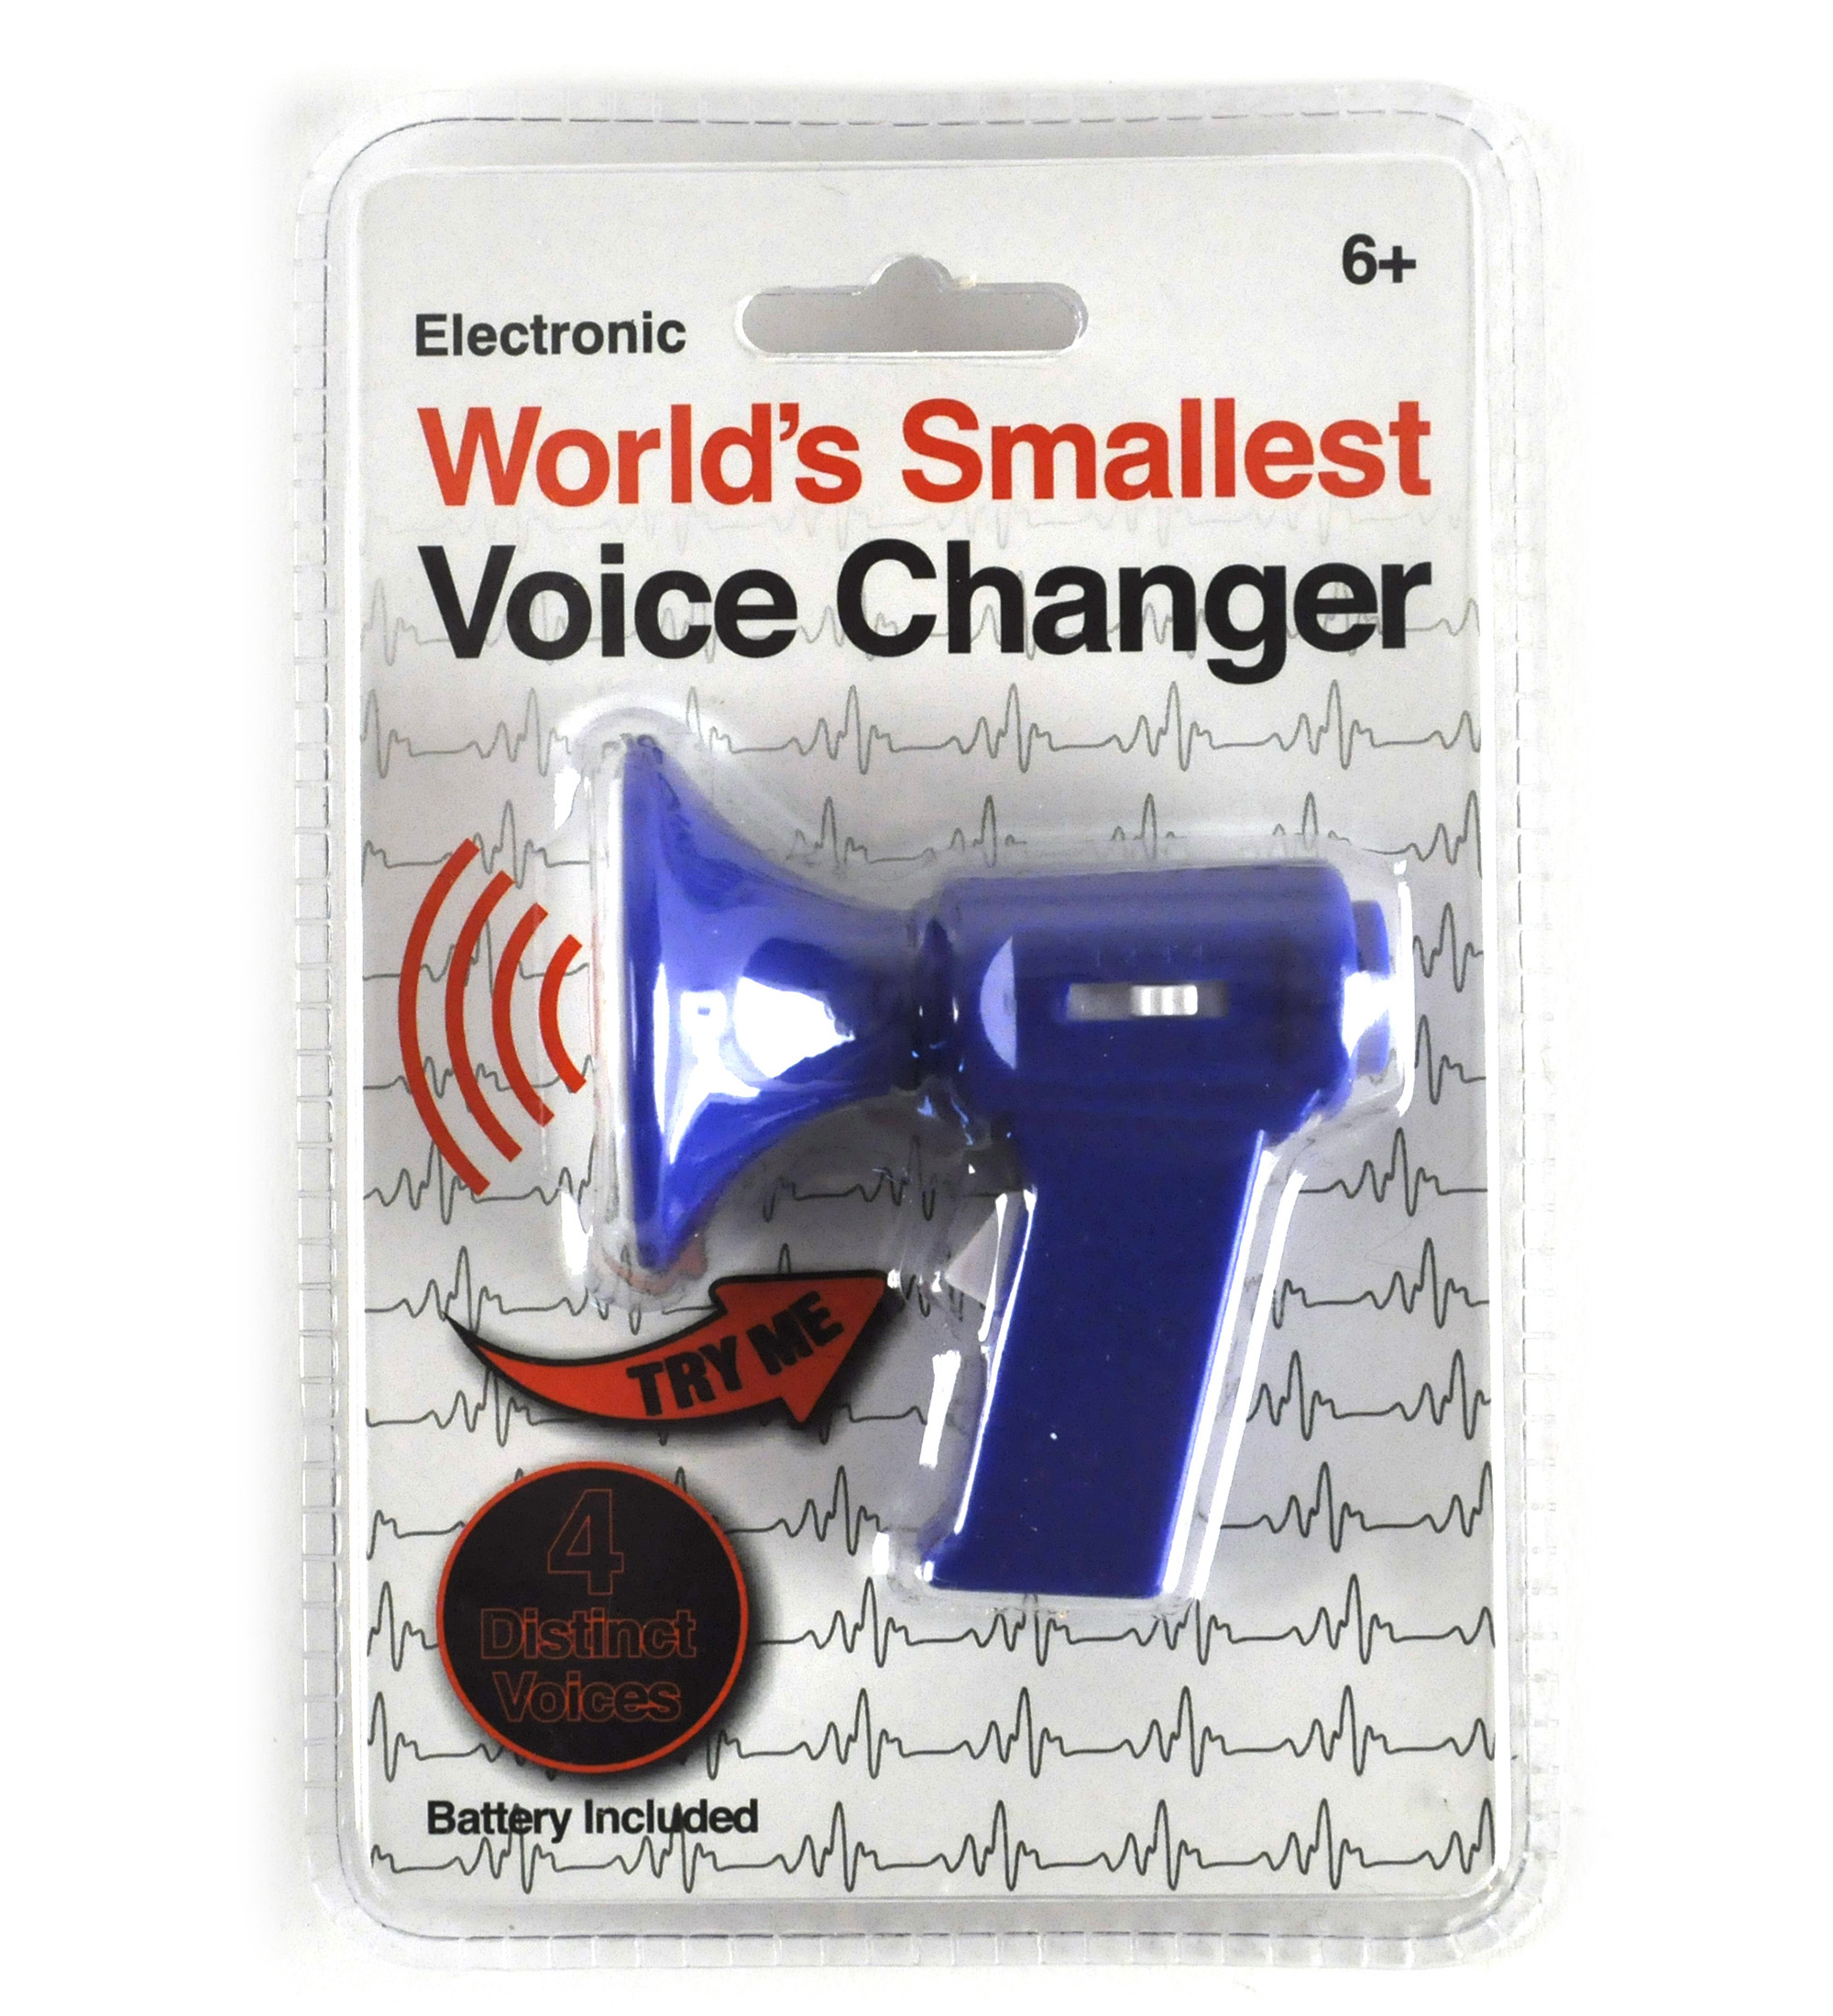 Voice Changer Beautiful Best With Snap Circuits Sound Kit Image One Xumpcom Excellent Worlds Smallest Distinct Voices